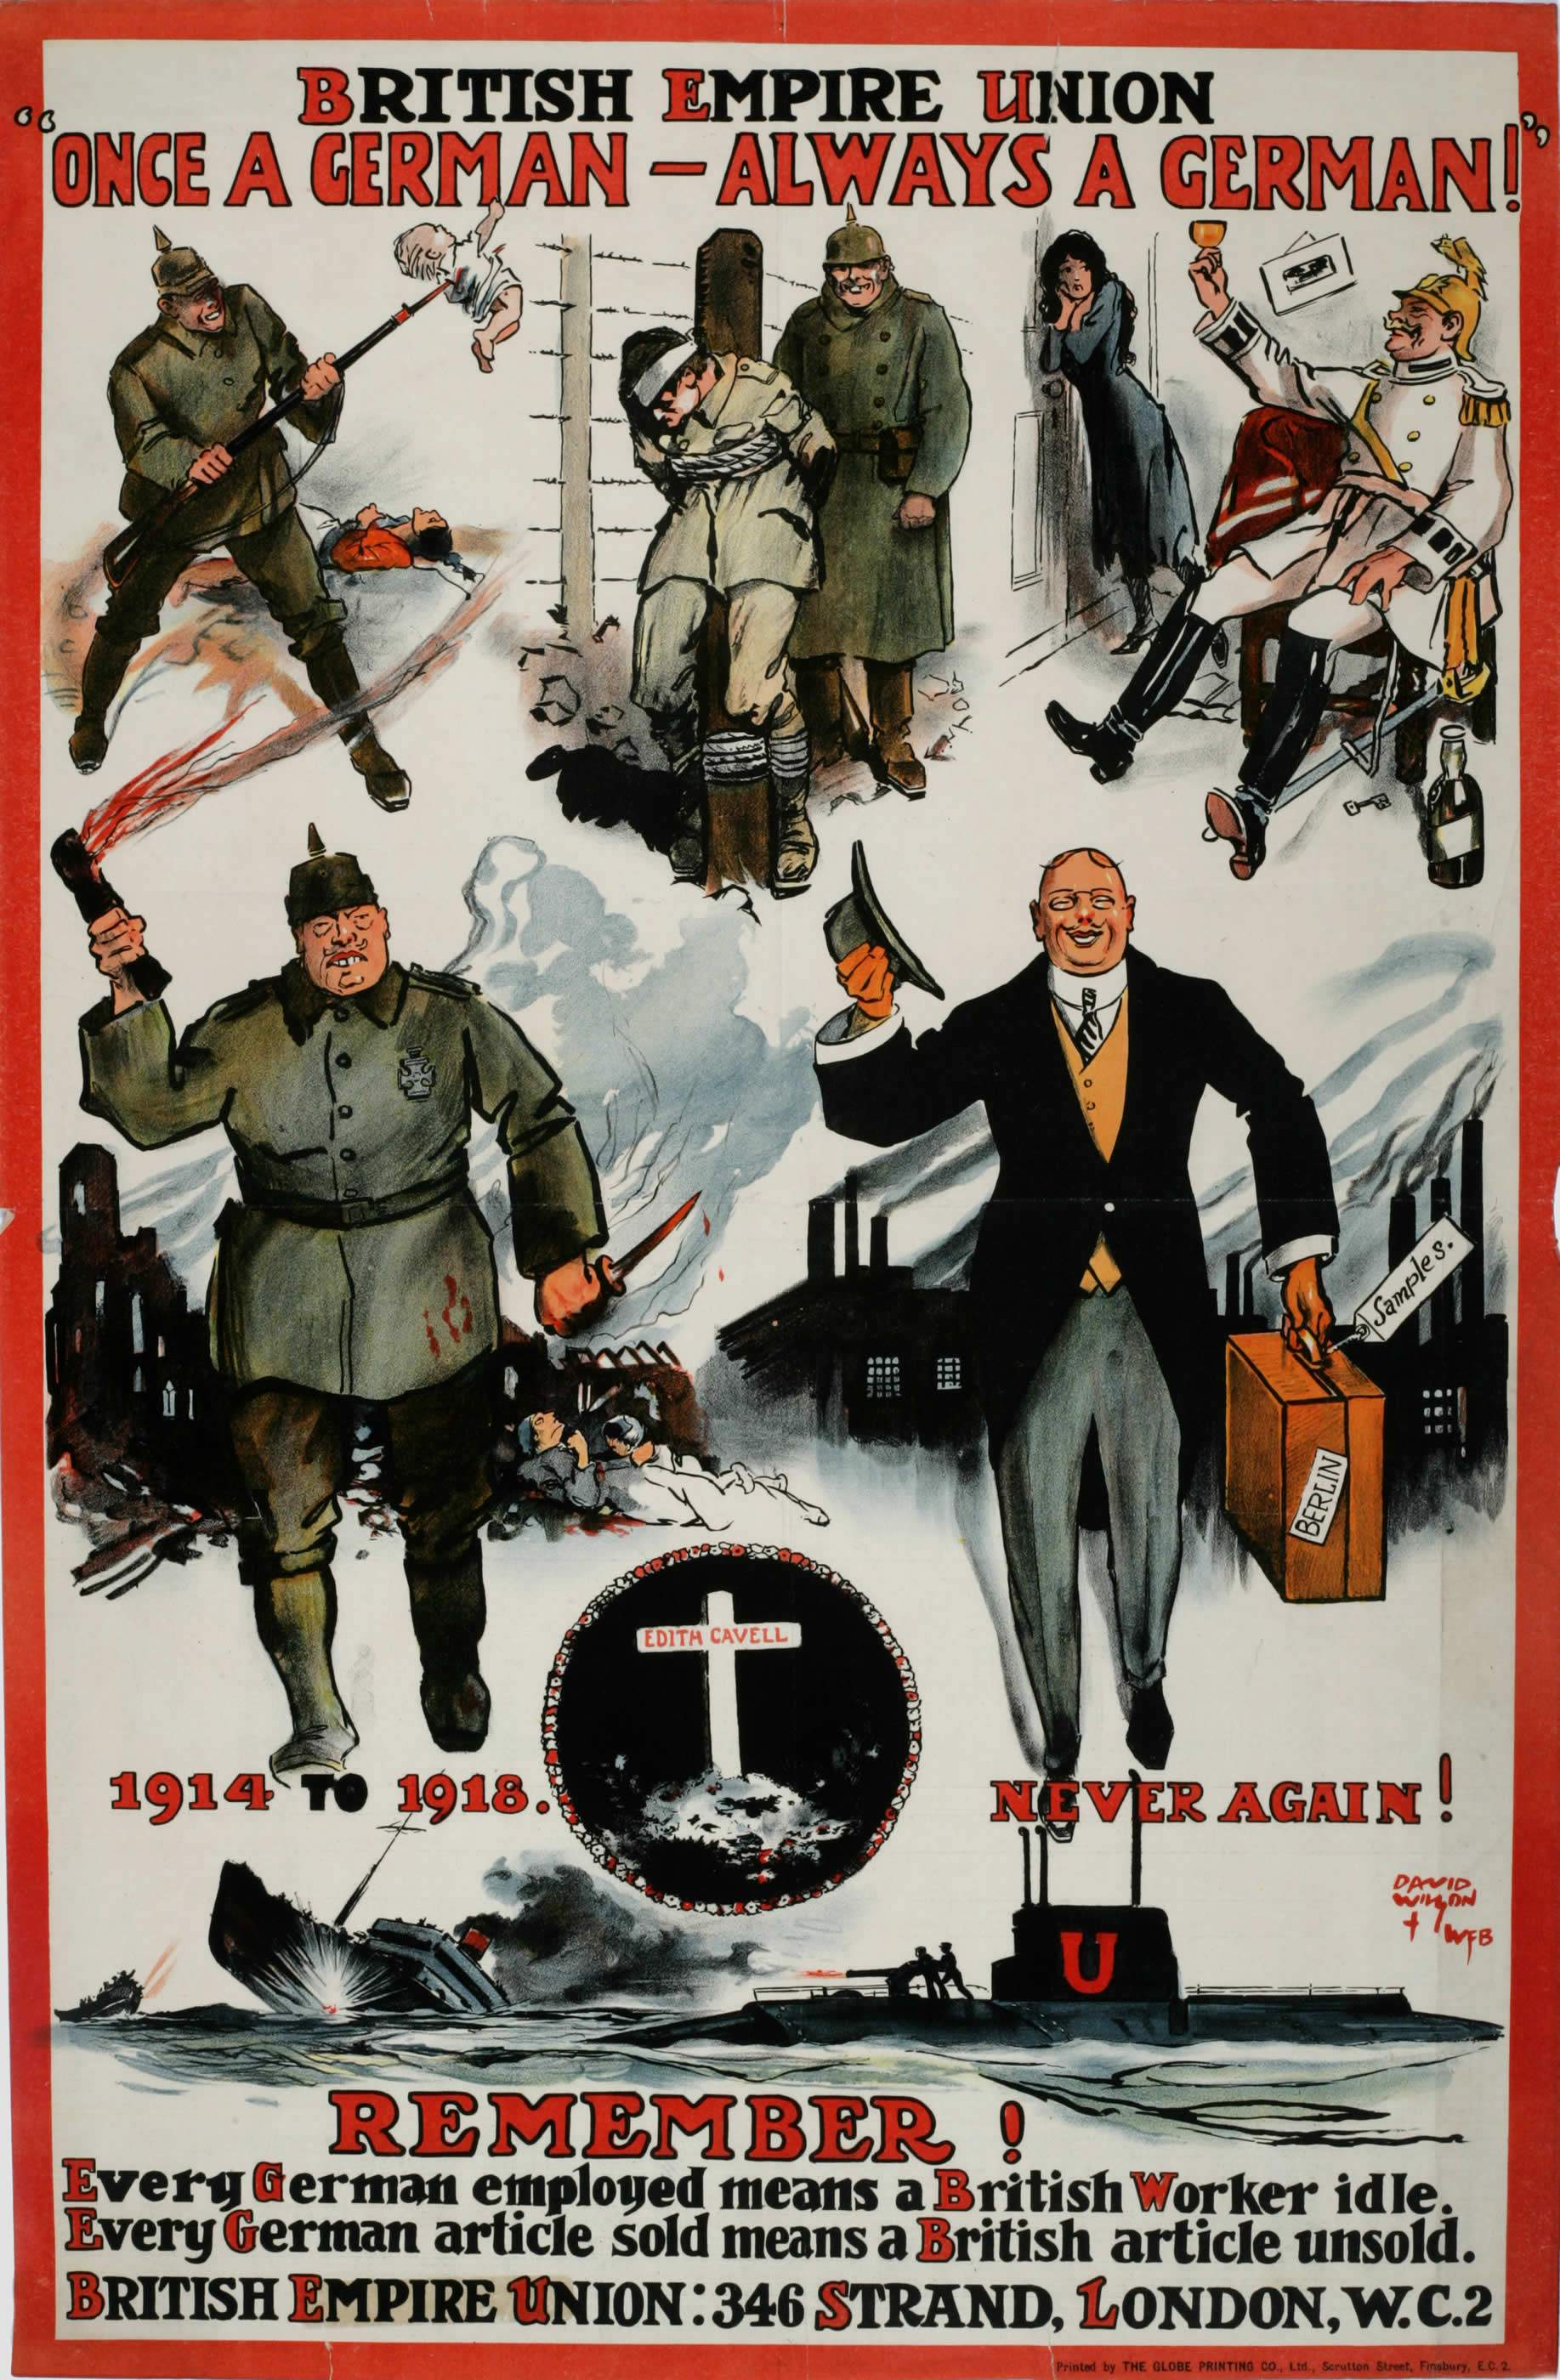 the benefits and impact of progressivism in america during world war i